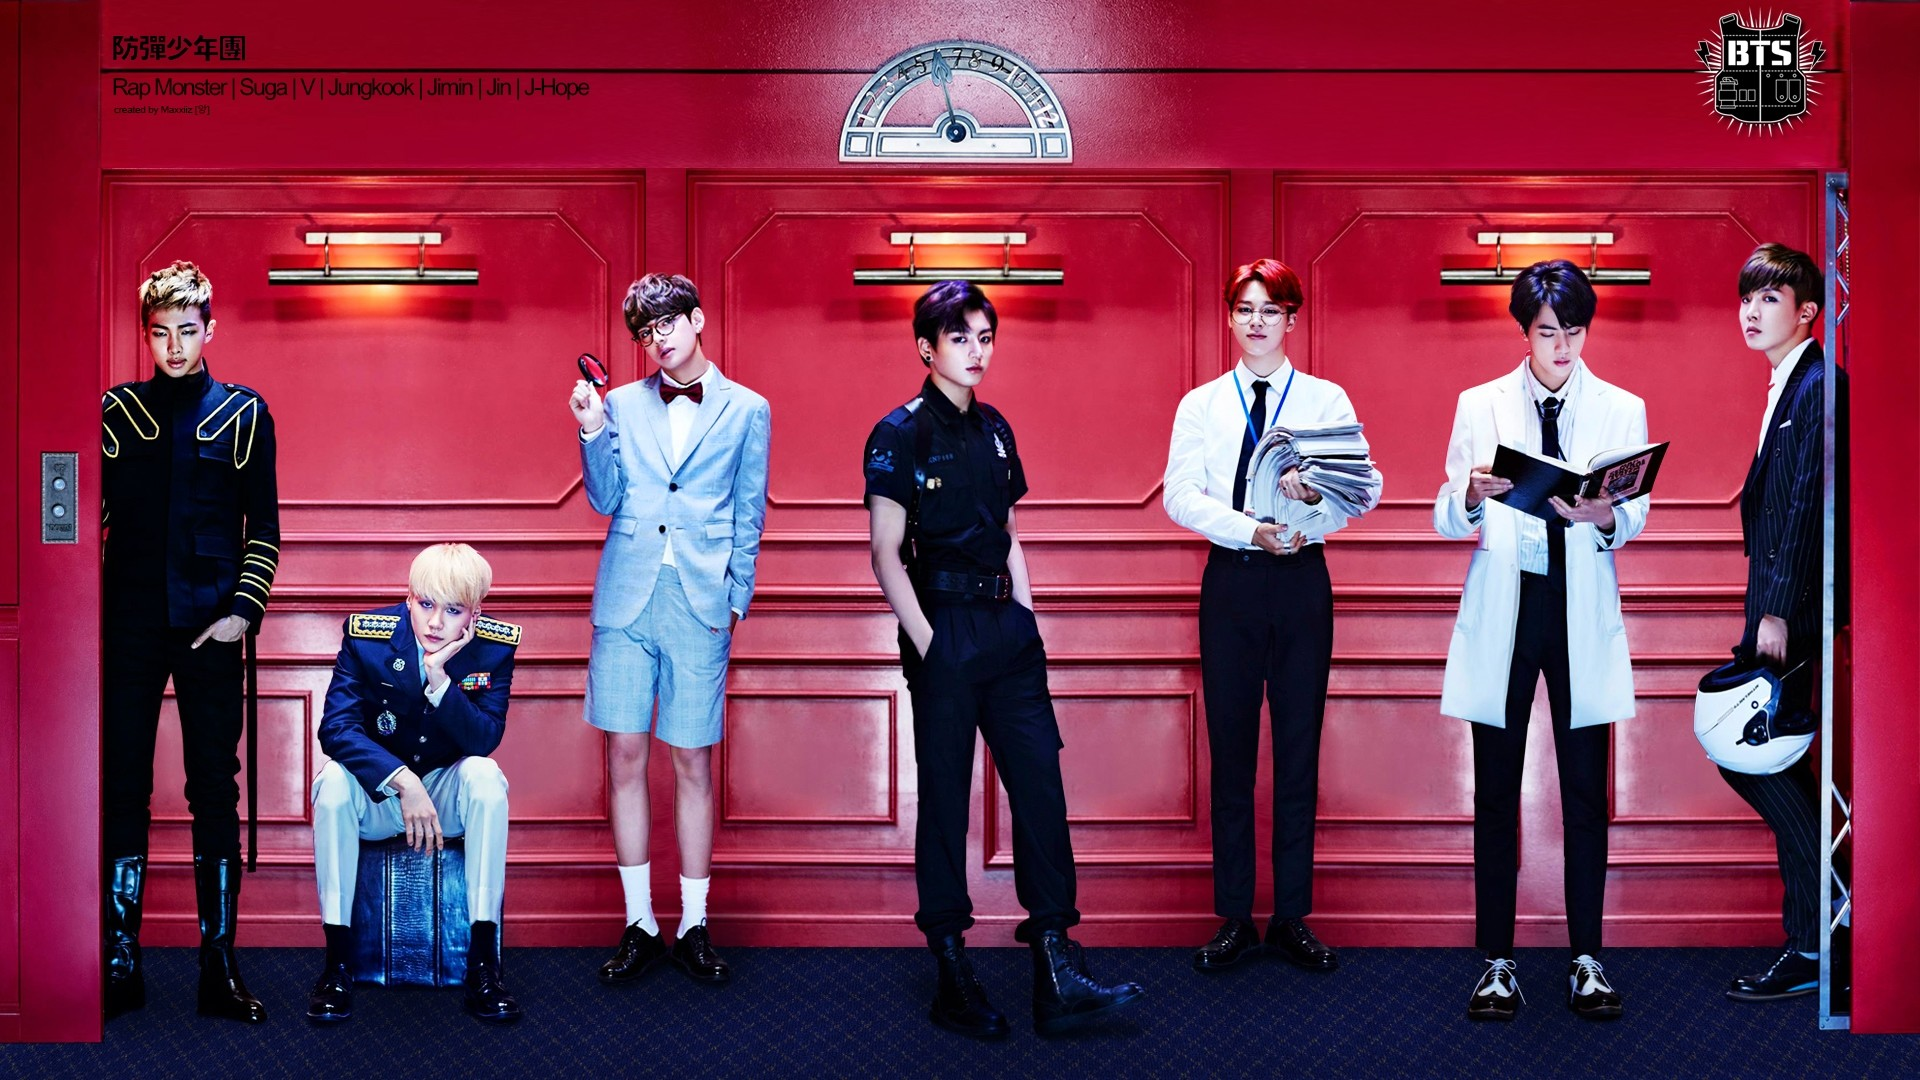 1920x1080 View all Bangtan Boys Wallpapers. Report this Image? favorite enlarge^   ...